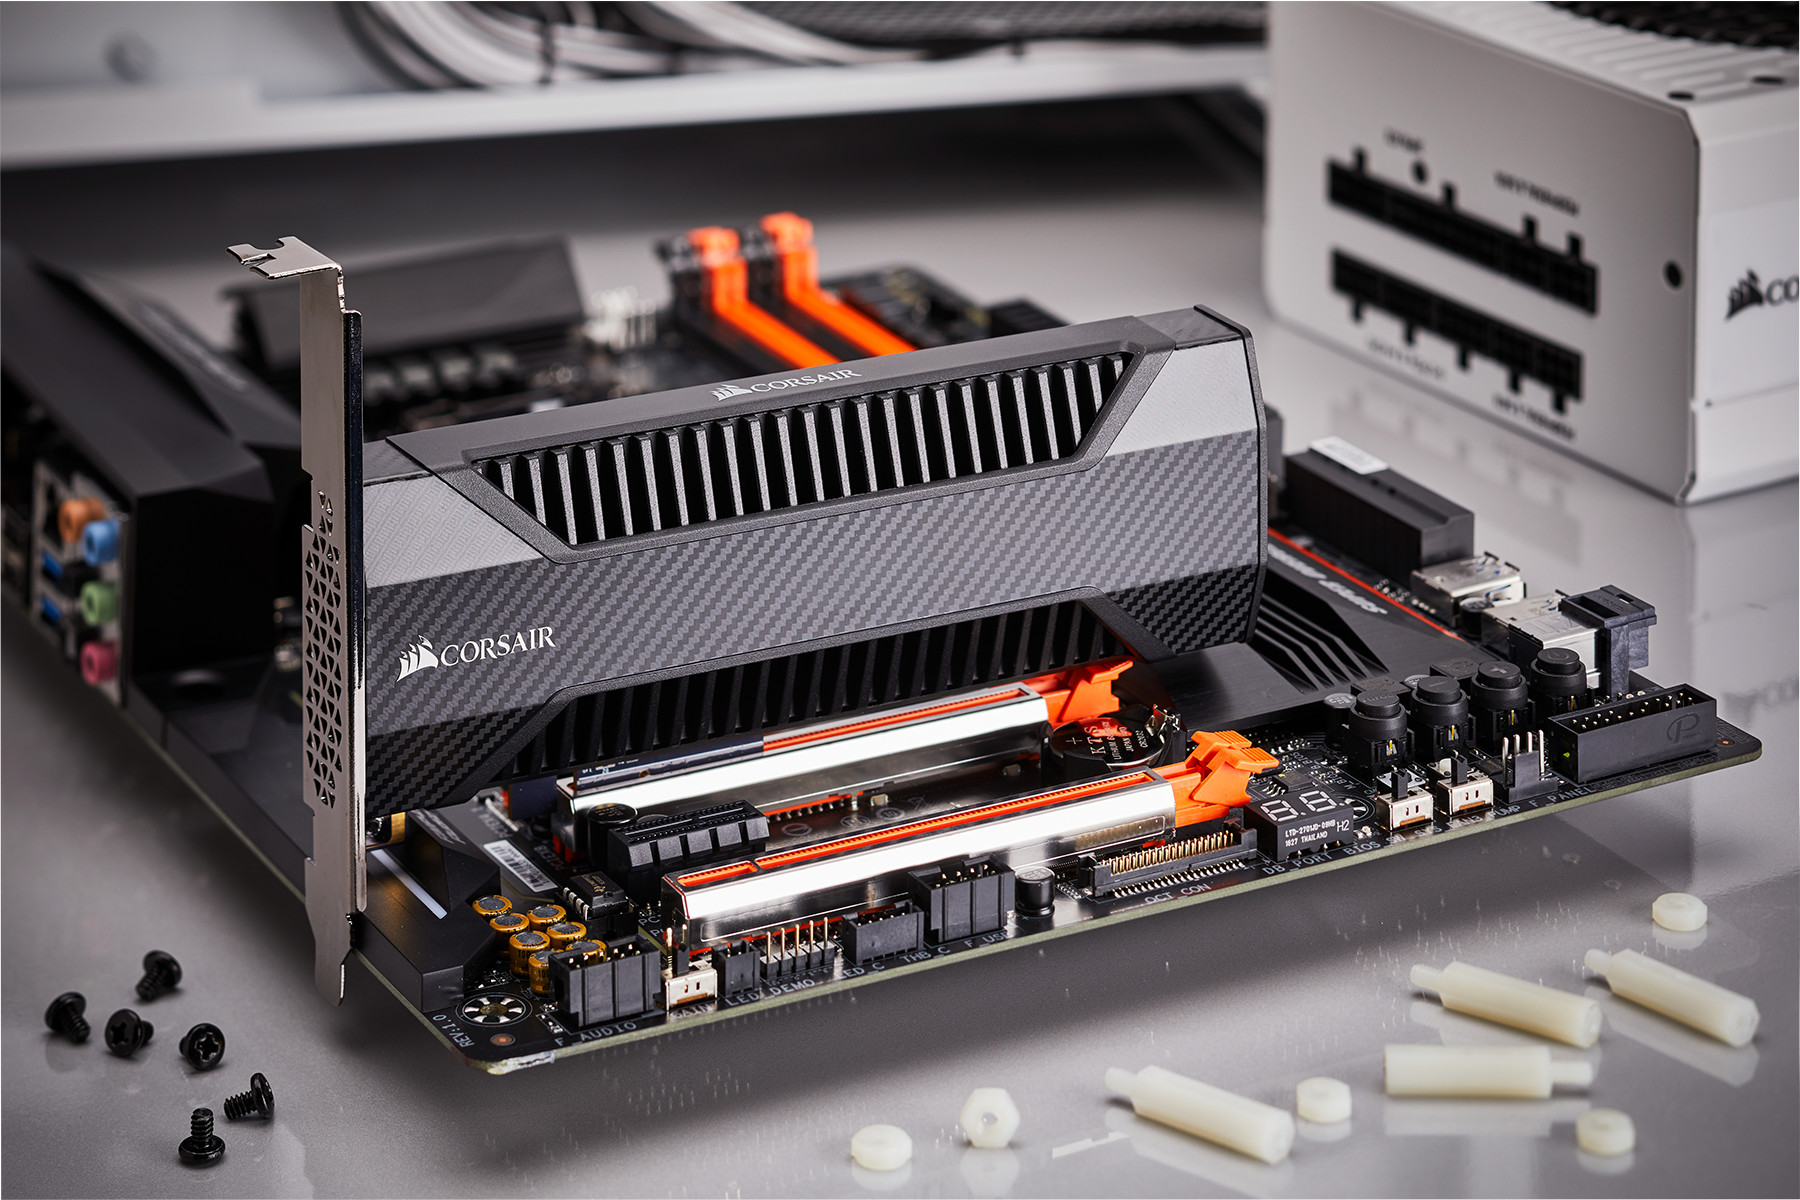 CORSAIR Launches the Neutron NX500 NVMe PCIe AIC SSD